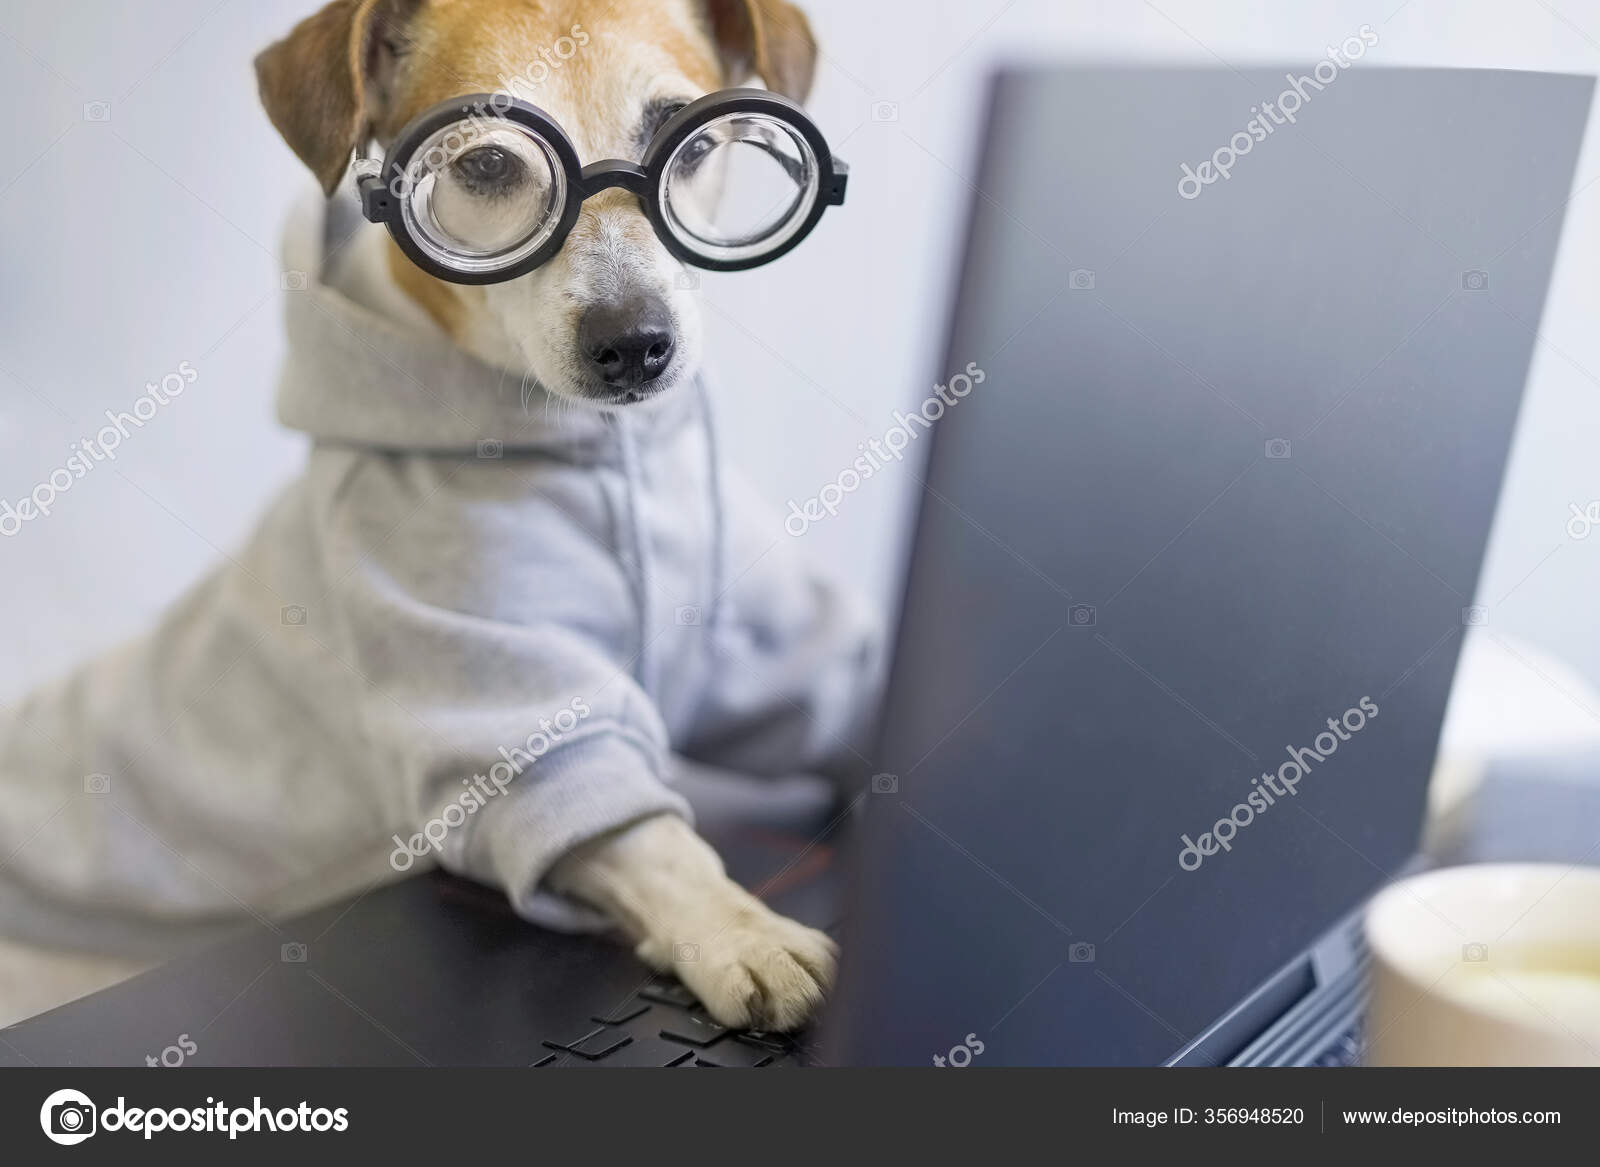 Smart Dog Glasses Working Computer Wearing Sporty Stylish Hoodie Freelancer Stock Photo C Flydragonfly 356948520,Hacks Space Saving Ideas For Small Apartments